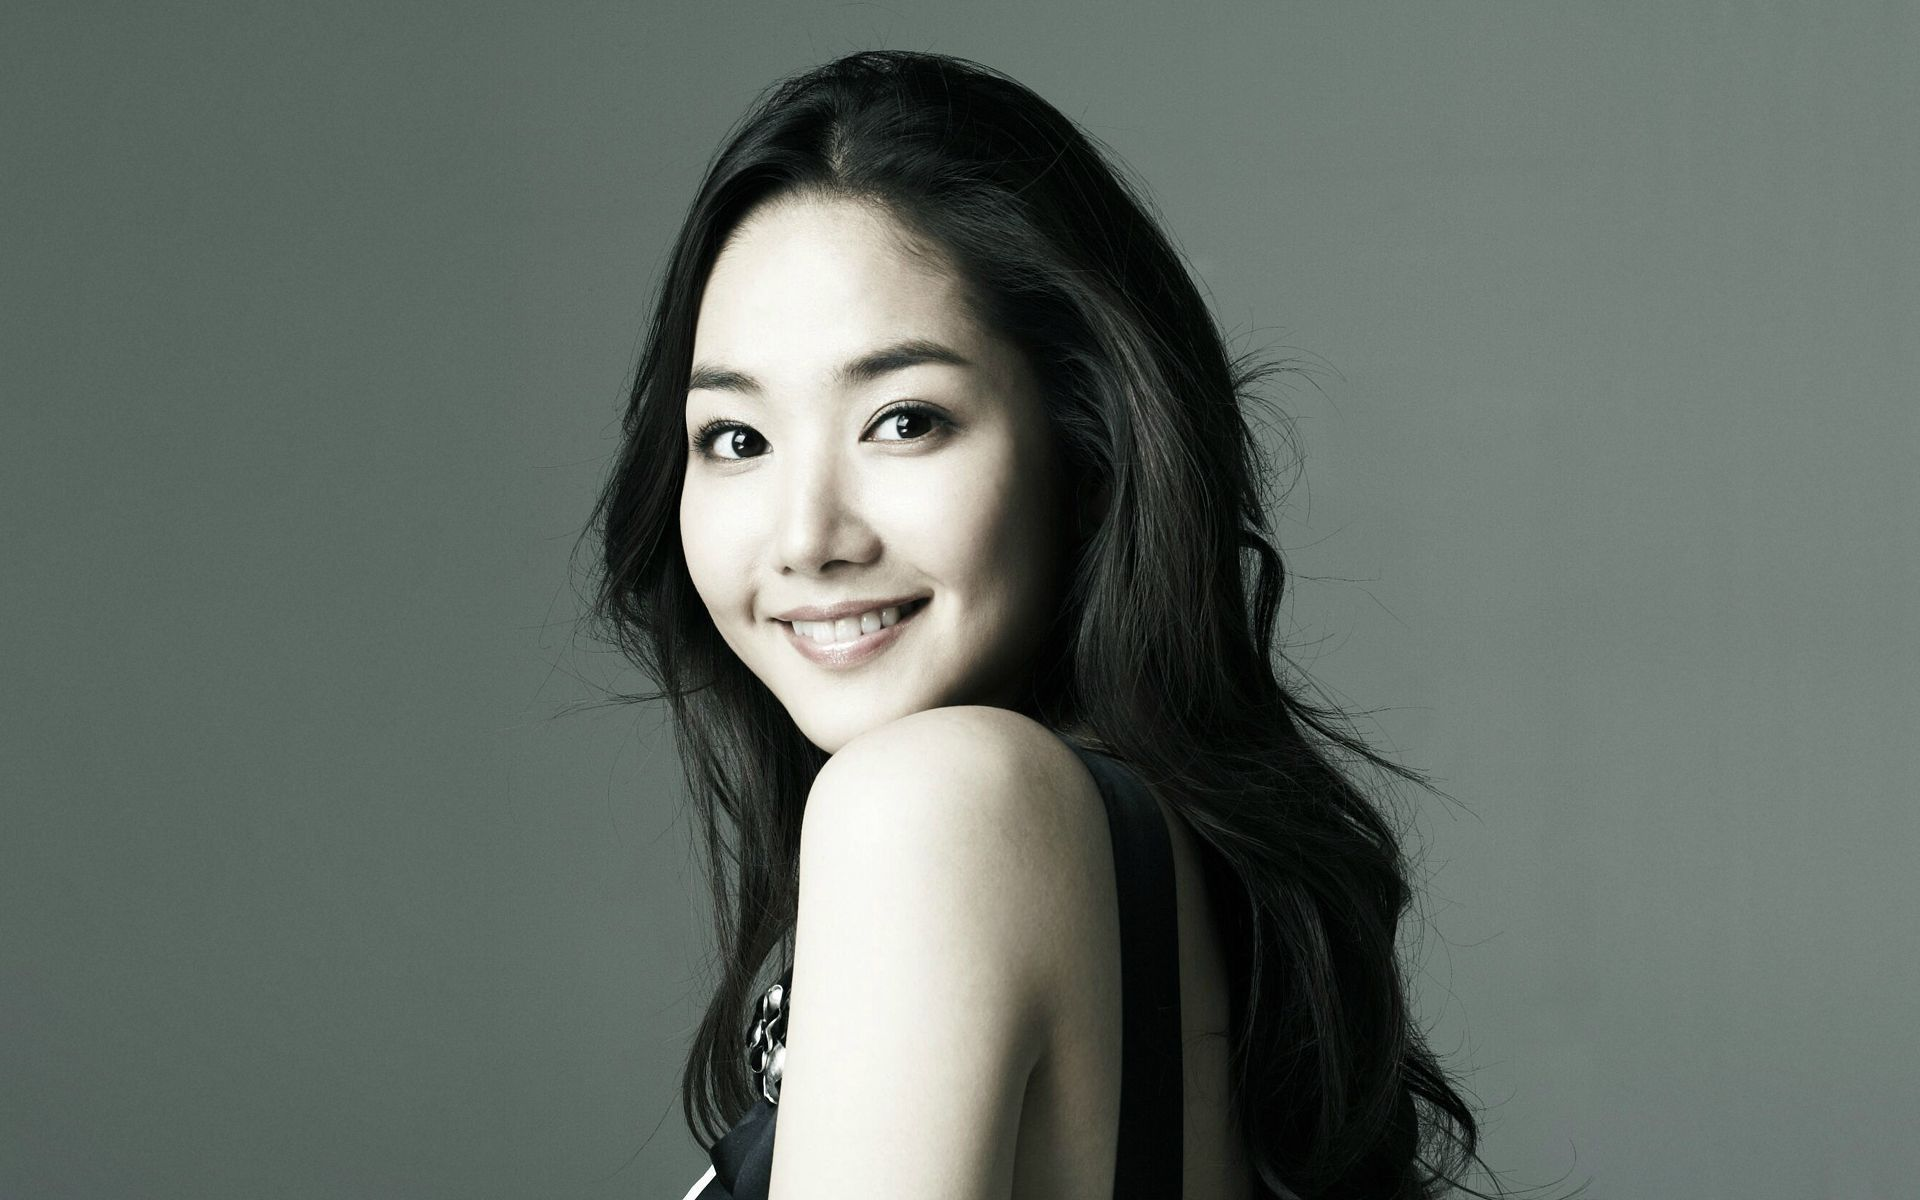 Park Min Young Wallpapers Images Photos Pictures Backgrounds 1920x1200